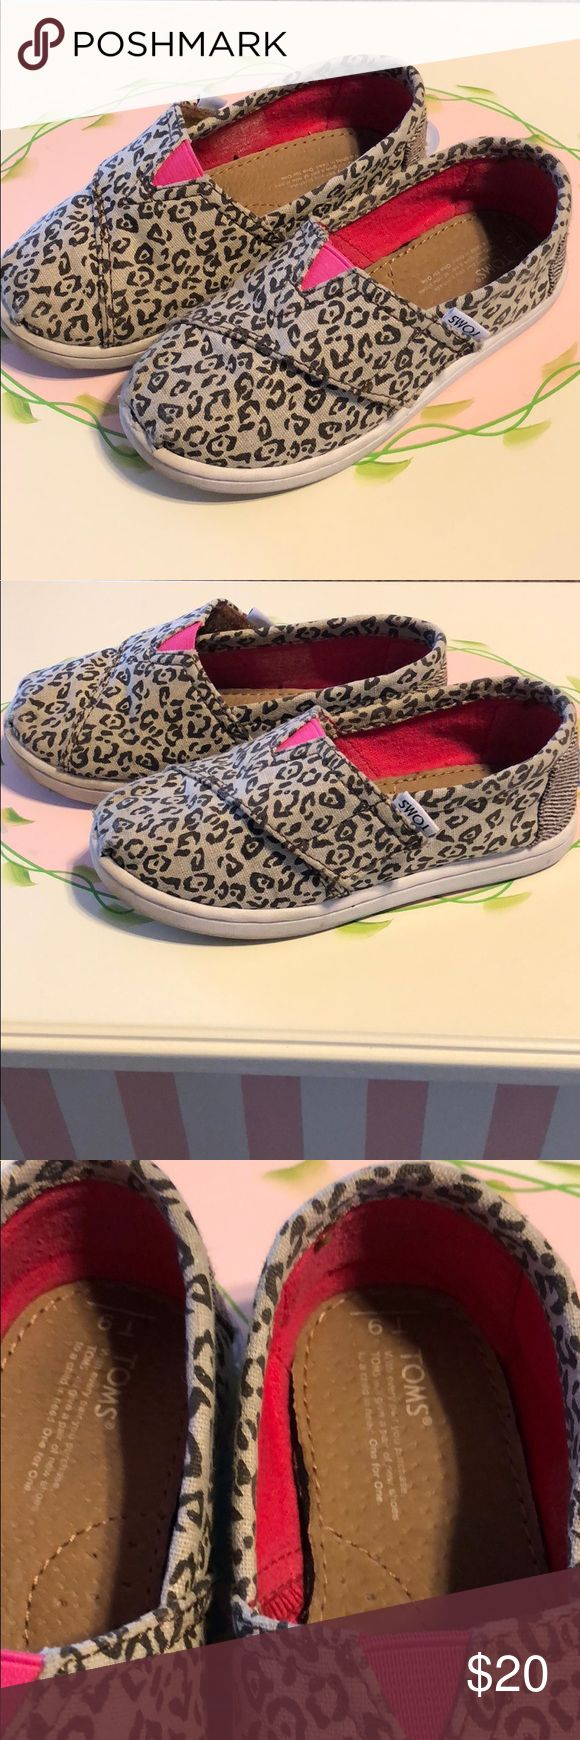 Tiny Toms size 9 EUC Toms classic. Adorable leopard print with a tiny bit of sparkle. Size T9 EUC comes in original box Toms Shoes Sneakers